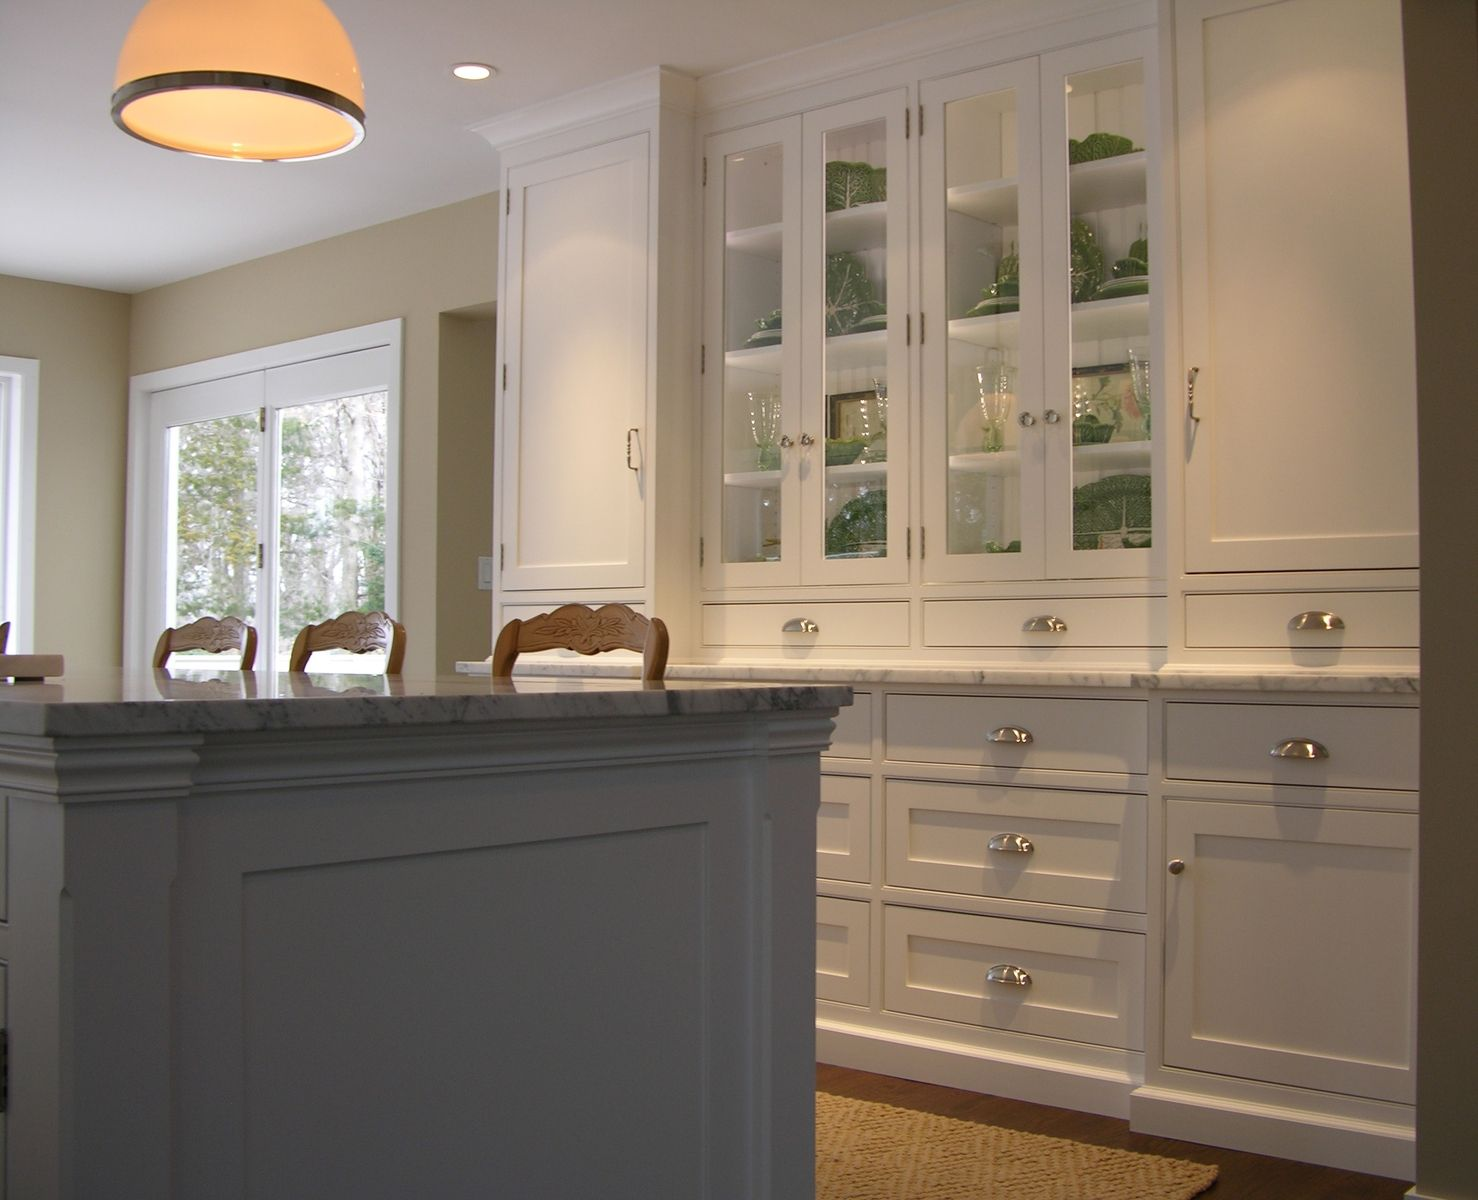 Custom Made Kitchen Doors Hand Crafted Classic White Kitchen By Norman Orsinger Woodworking